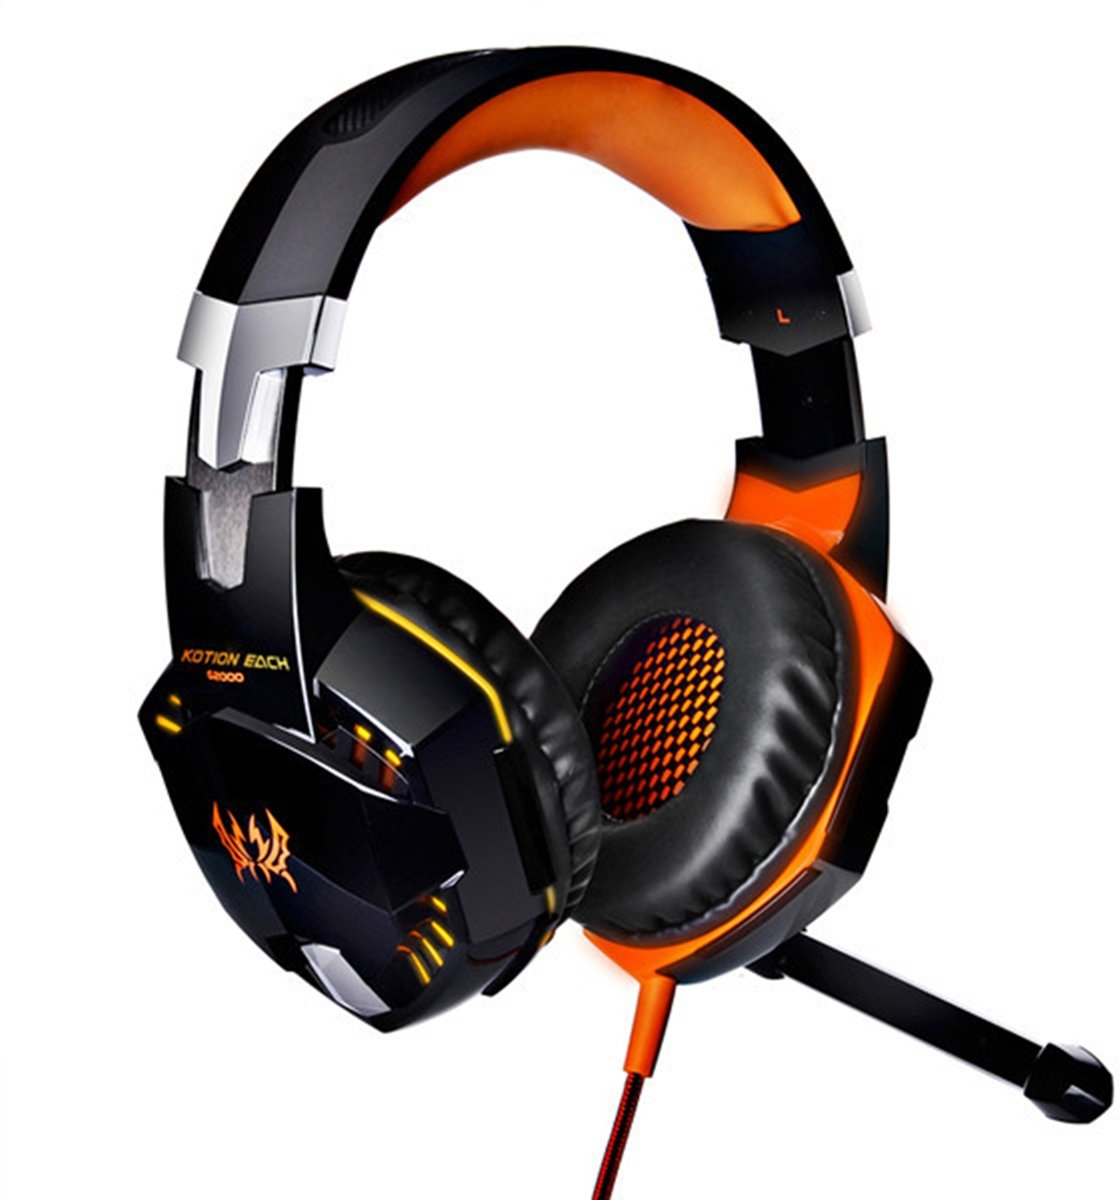 G2000 Over-ear Game Gaming hoofdtelefoon Headset Koptelefoon Headband met Mic Stereo Bass LED licht voor PC Gamer,Kabel Length: About 2.2m(Oranje + zwart)